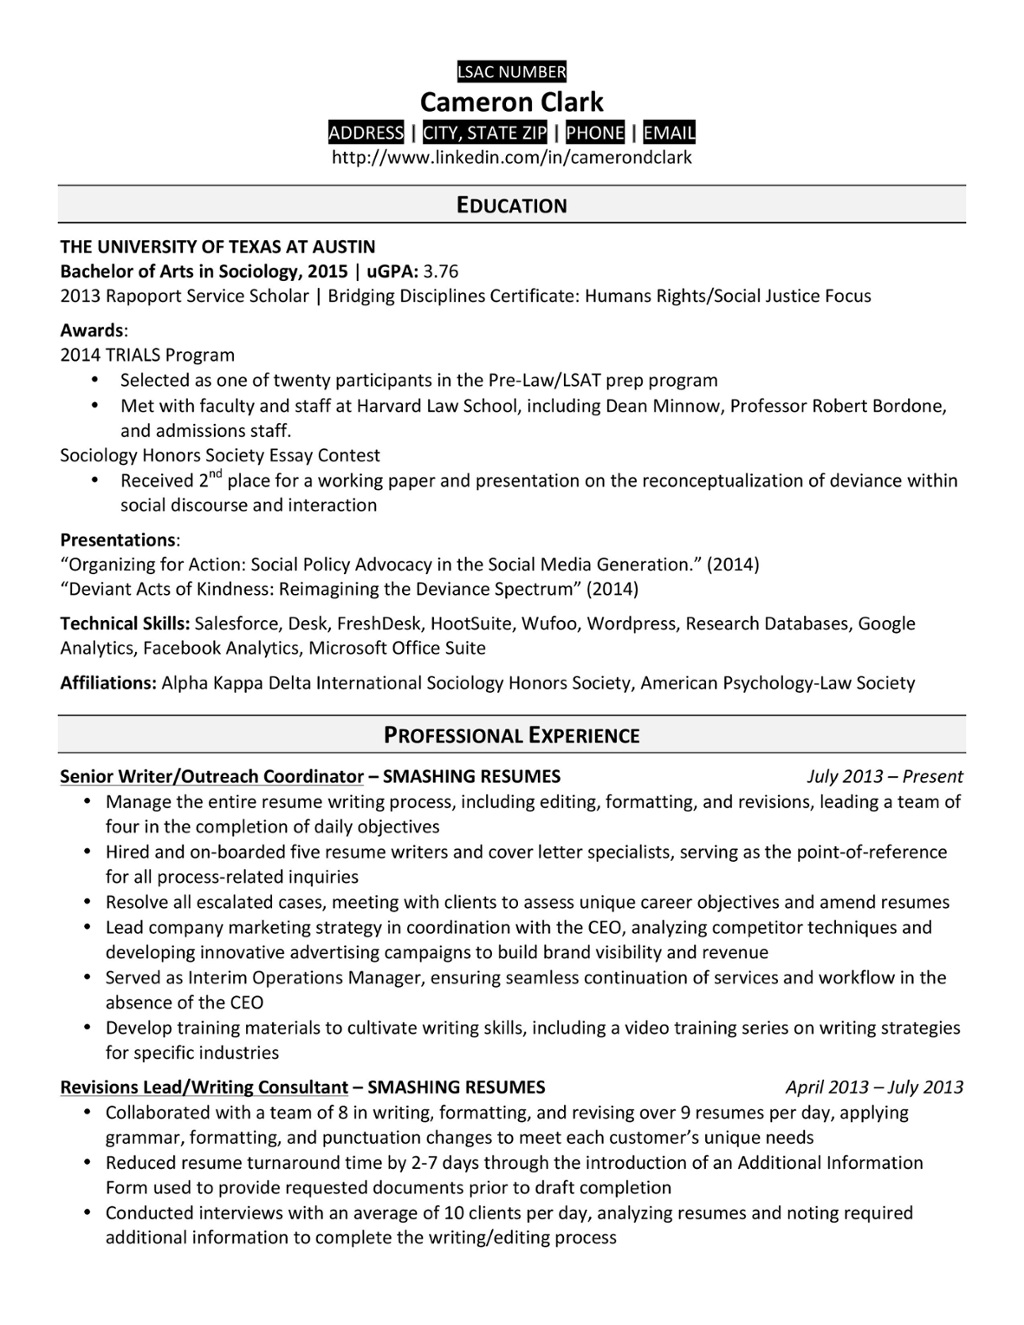 a law school resume that made the cut top law schools us news - Law School Resume Example